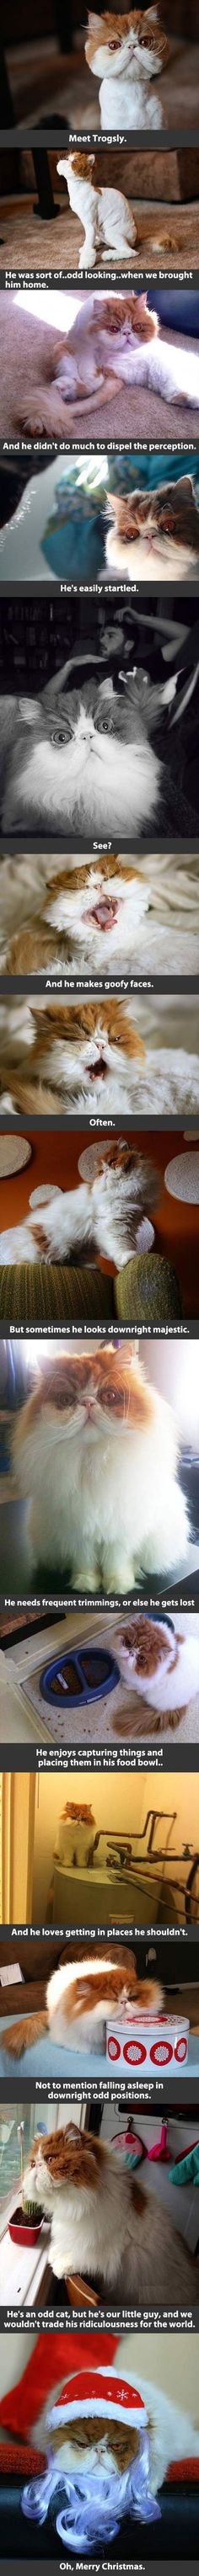 Awesome kitty cat